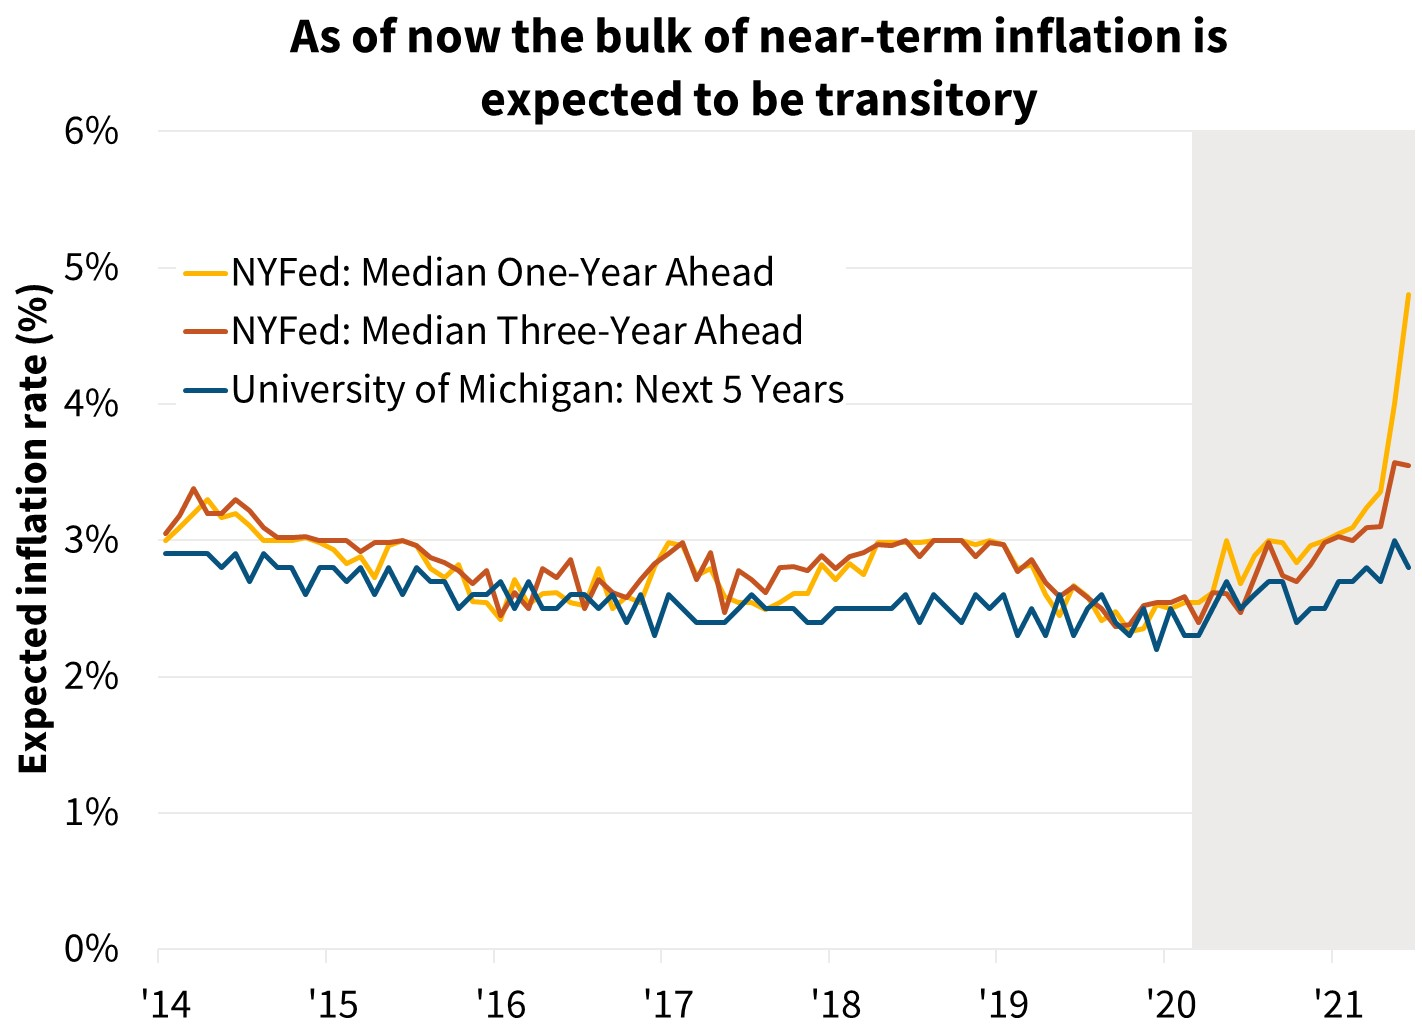 As of now the bulk of near-term inflation is expected to be transitory